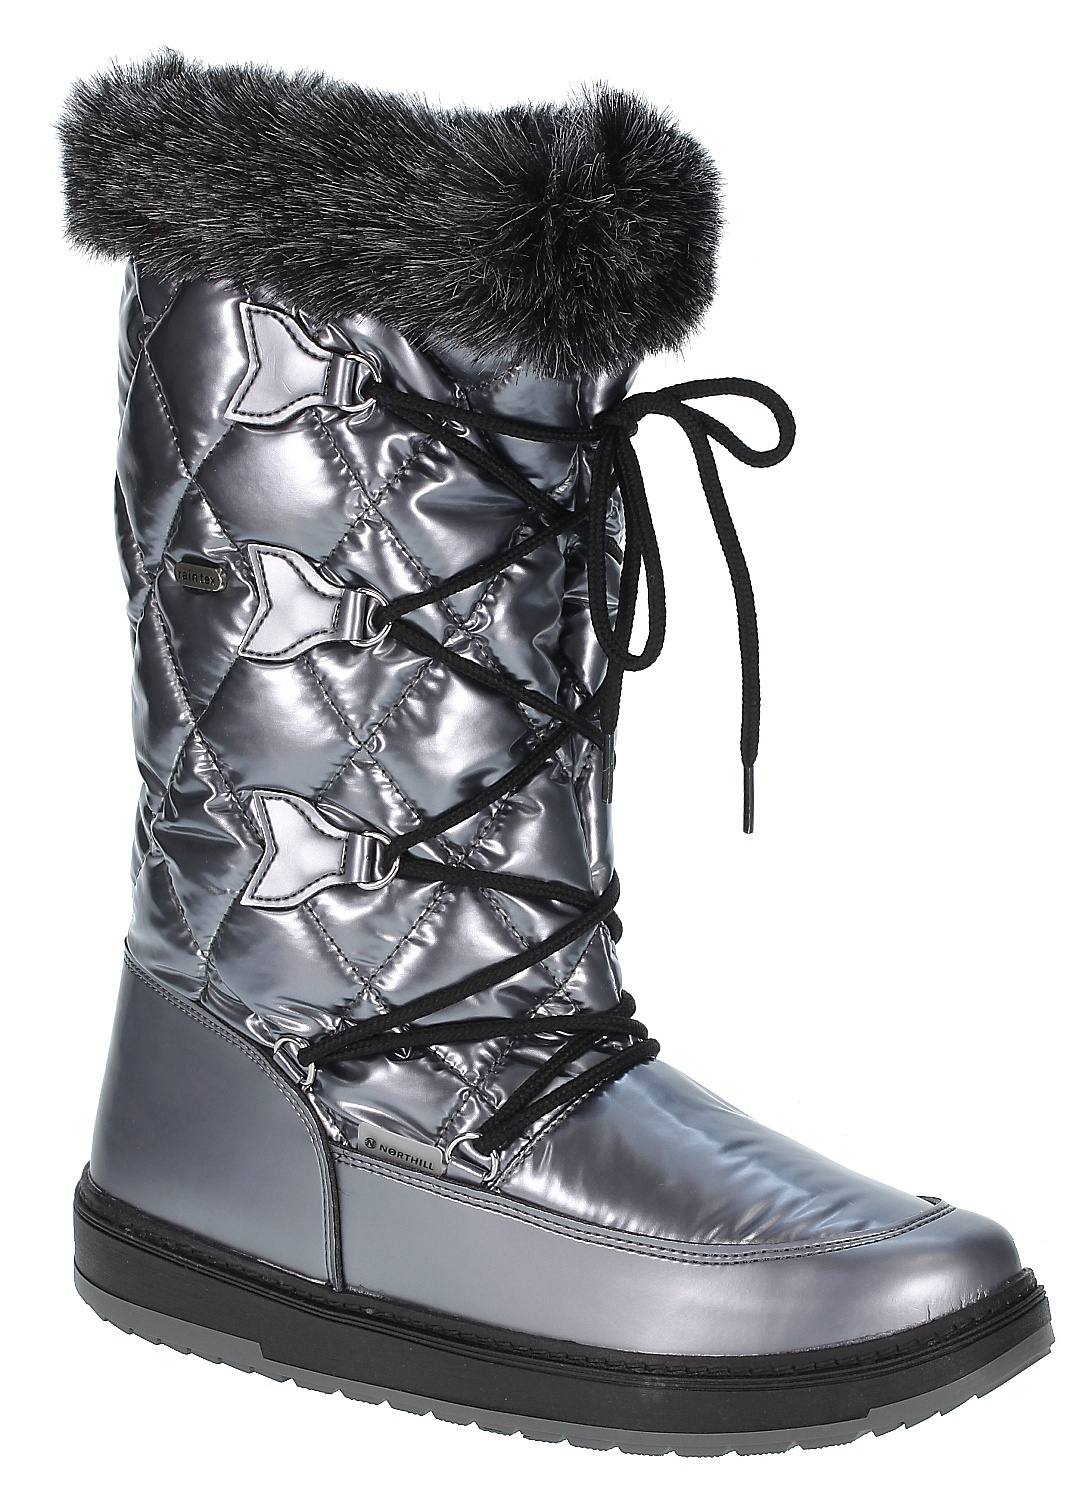 boty Northill 82404/5757 - Silver